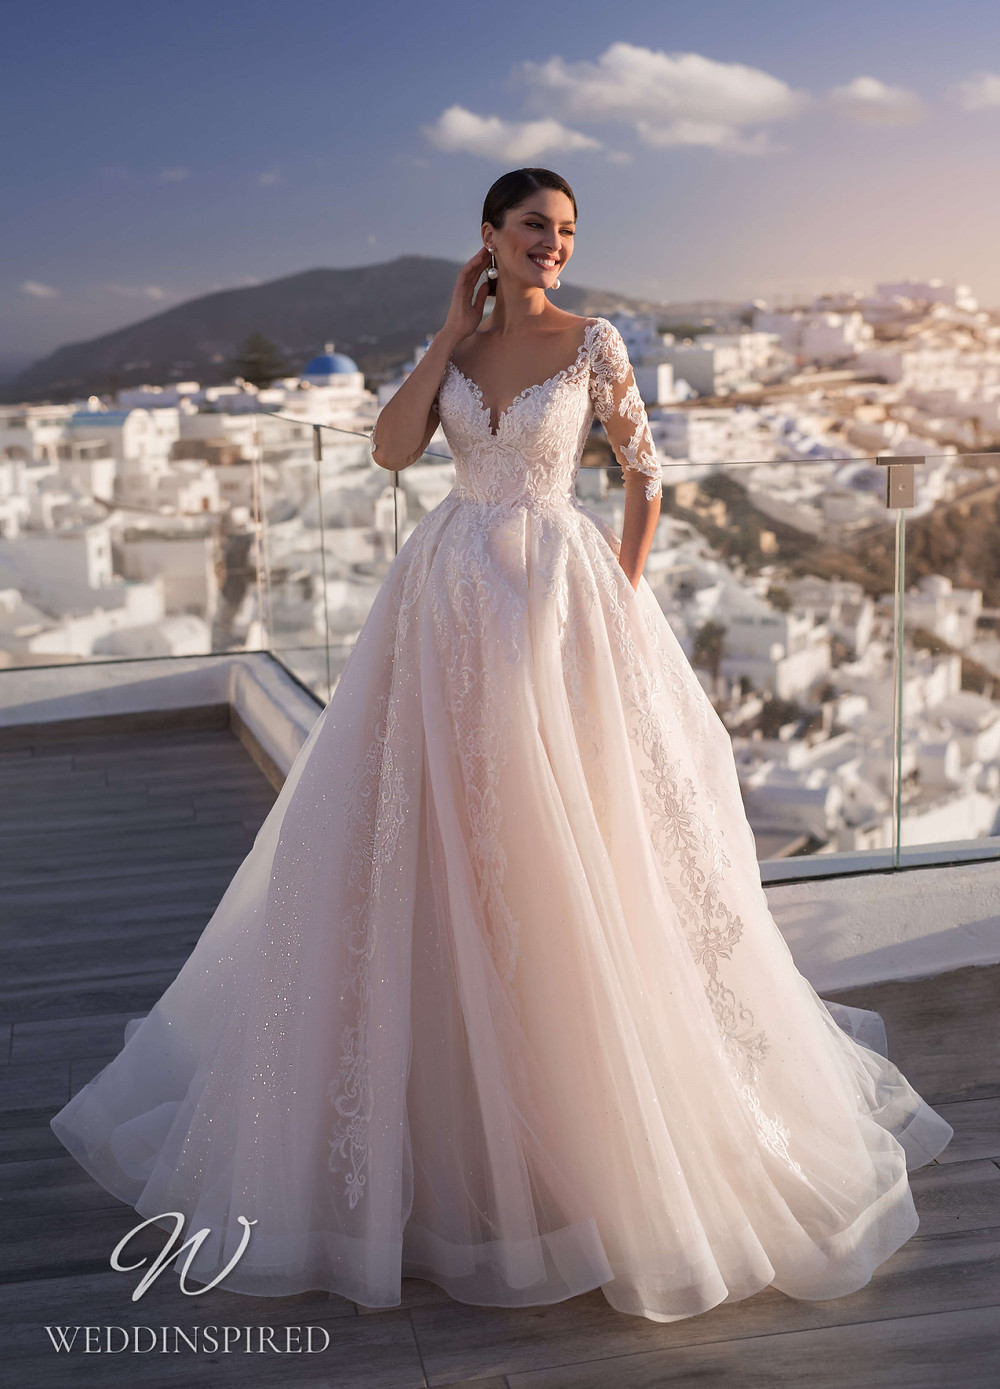 A Blunny 2021 blush lace and tulle princess wedding dress with 3/4 sleeves